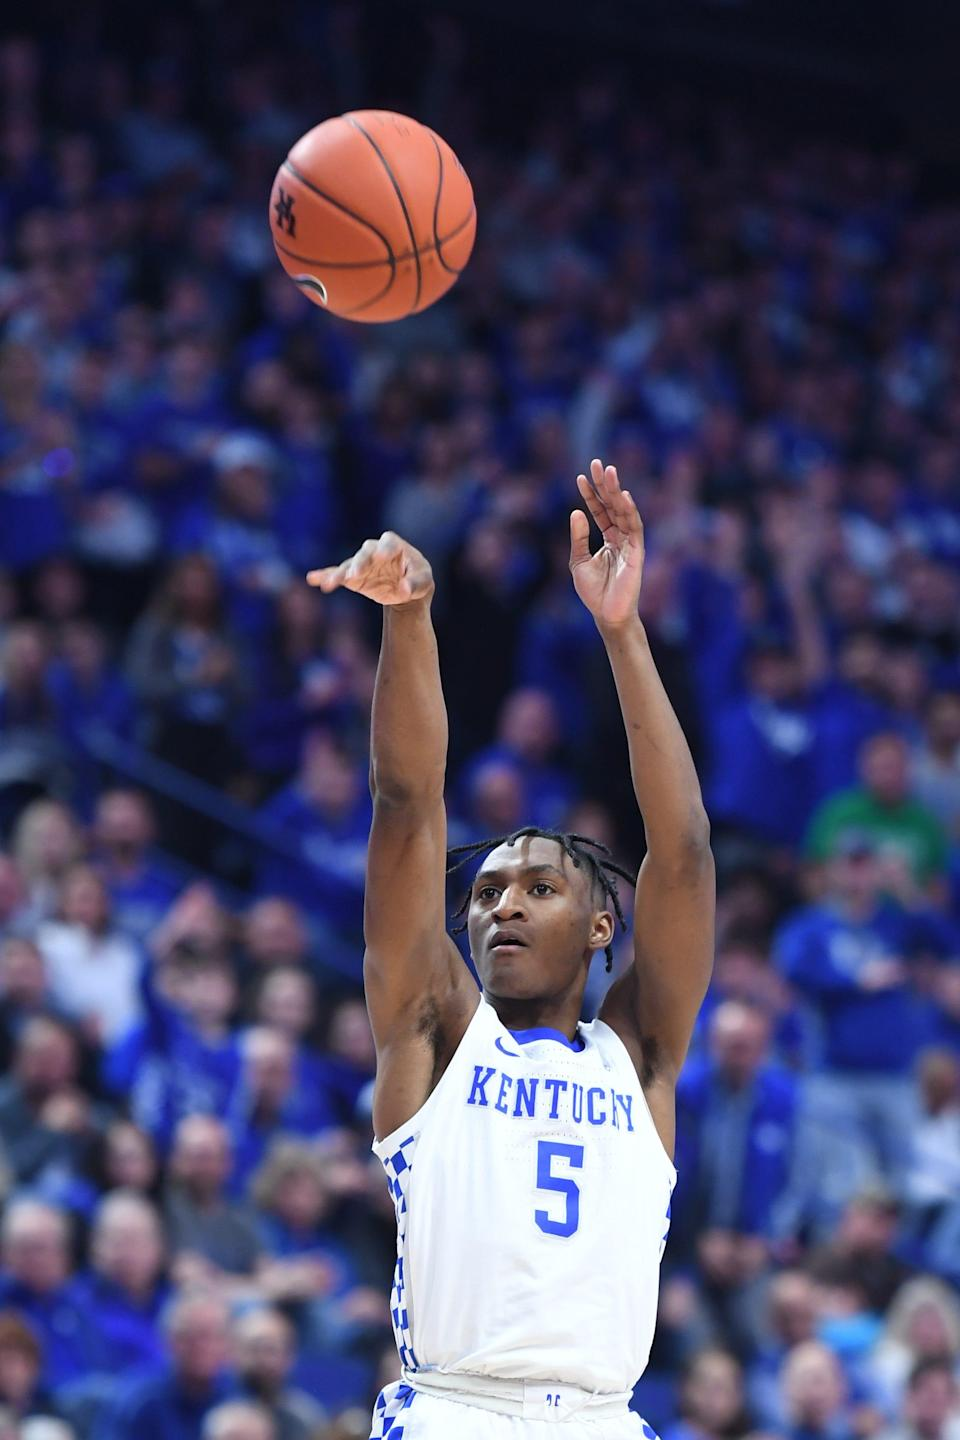 Immanuel Quickley shoots during the Kentucky game against Auburn on Feb. 29, 2020.